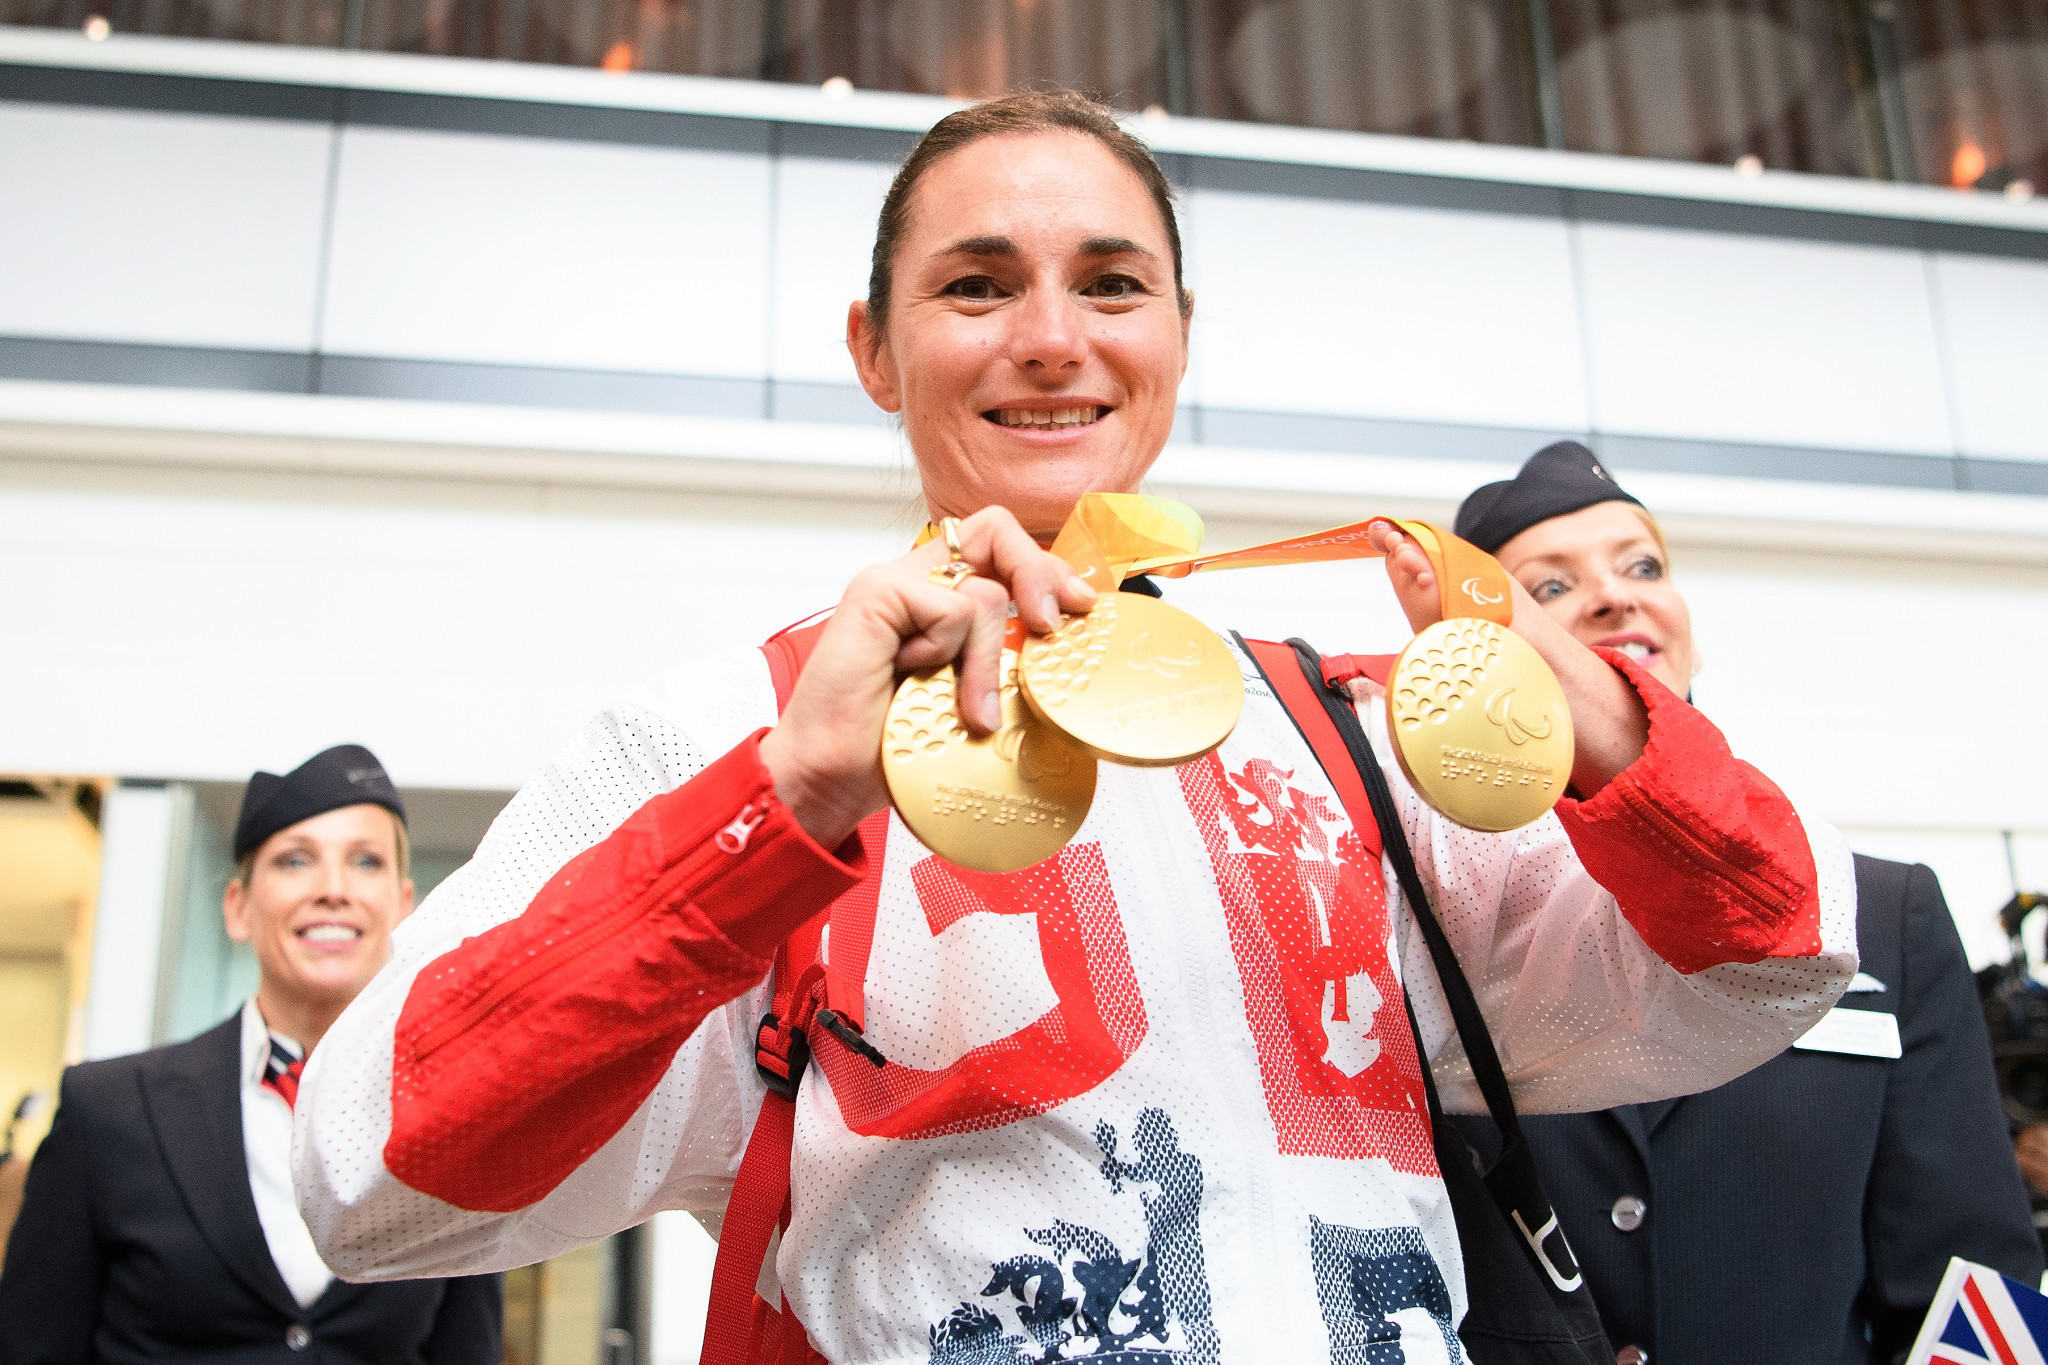 Dame Sarah Storey has raised concerns over the staging of Tokyo 2020 this year as she prepares for her eighth Paralympic Games ©Getty Images